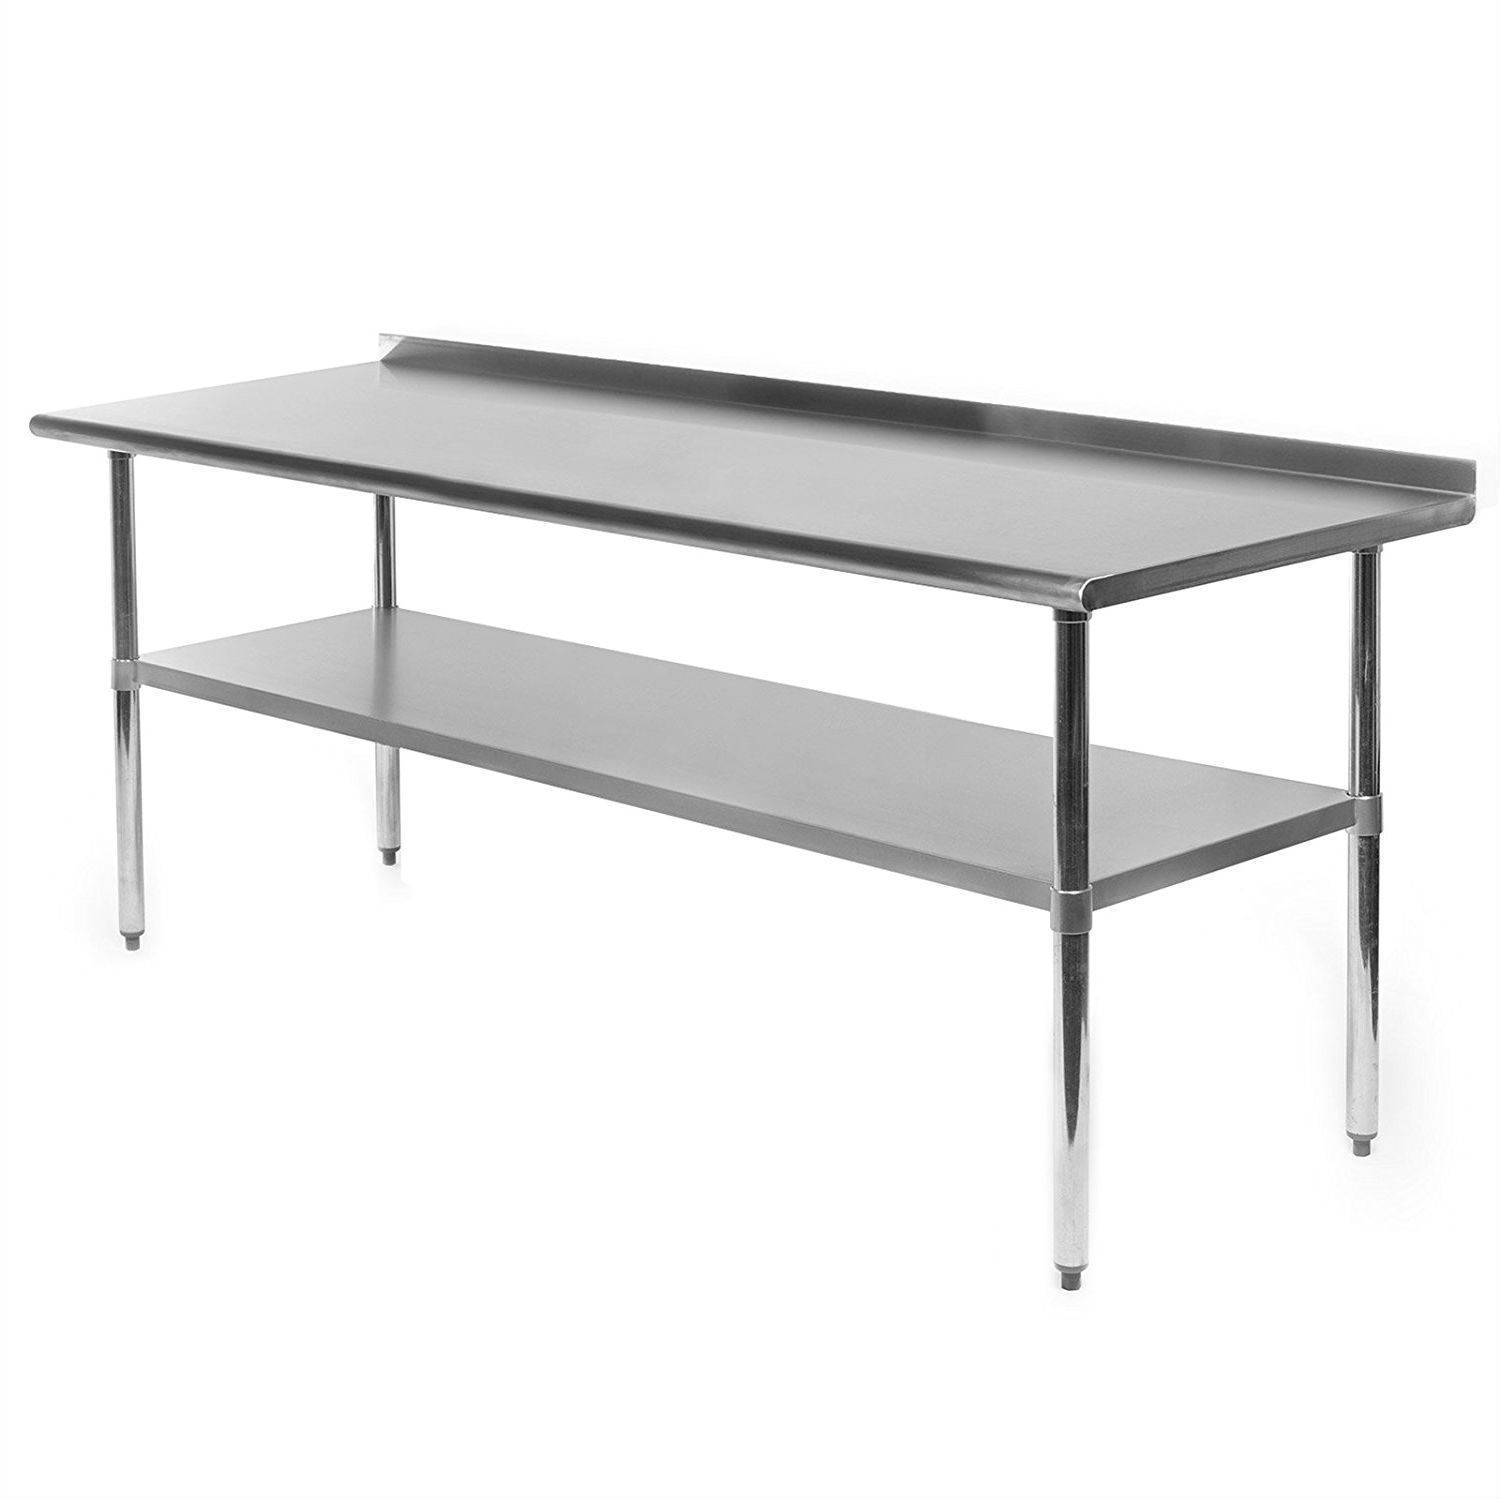 Fantastic Stainless Steel 72 X 24 Inch Kitchen Prep Work Table With Backsplash Andrewgaddart Wooden Chair Designs For Living Room Andrewgaddartcom